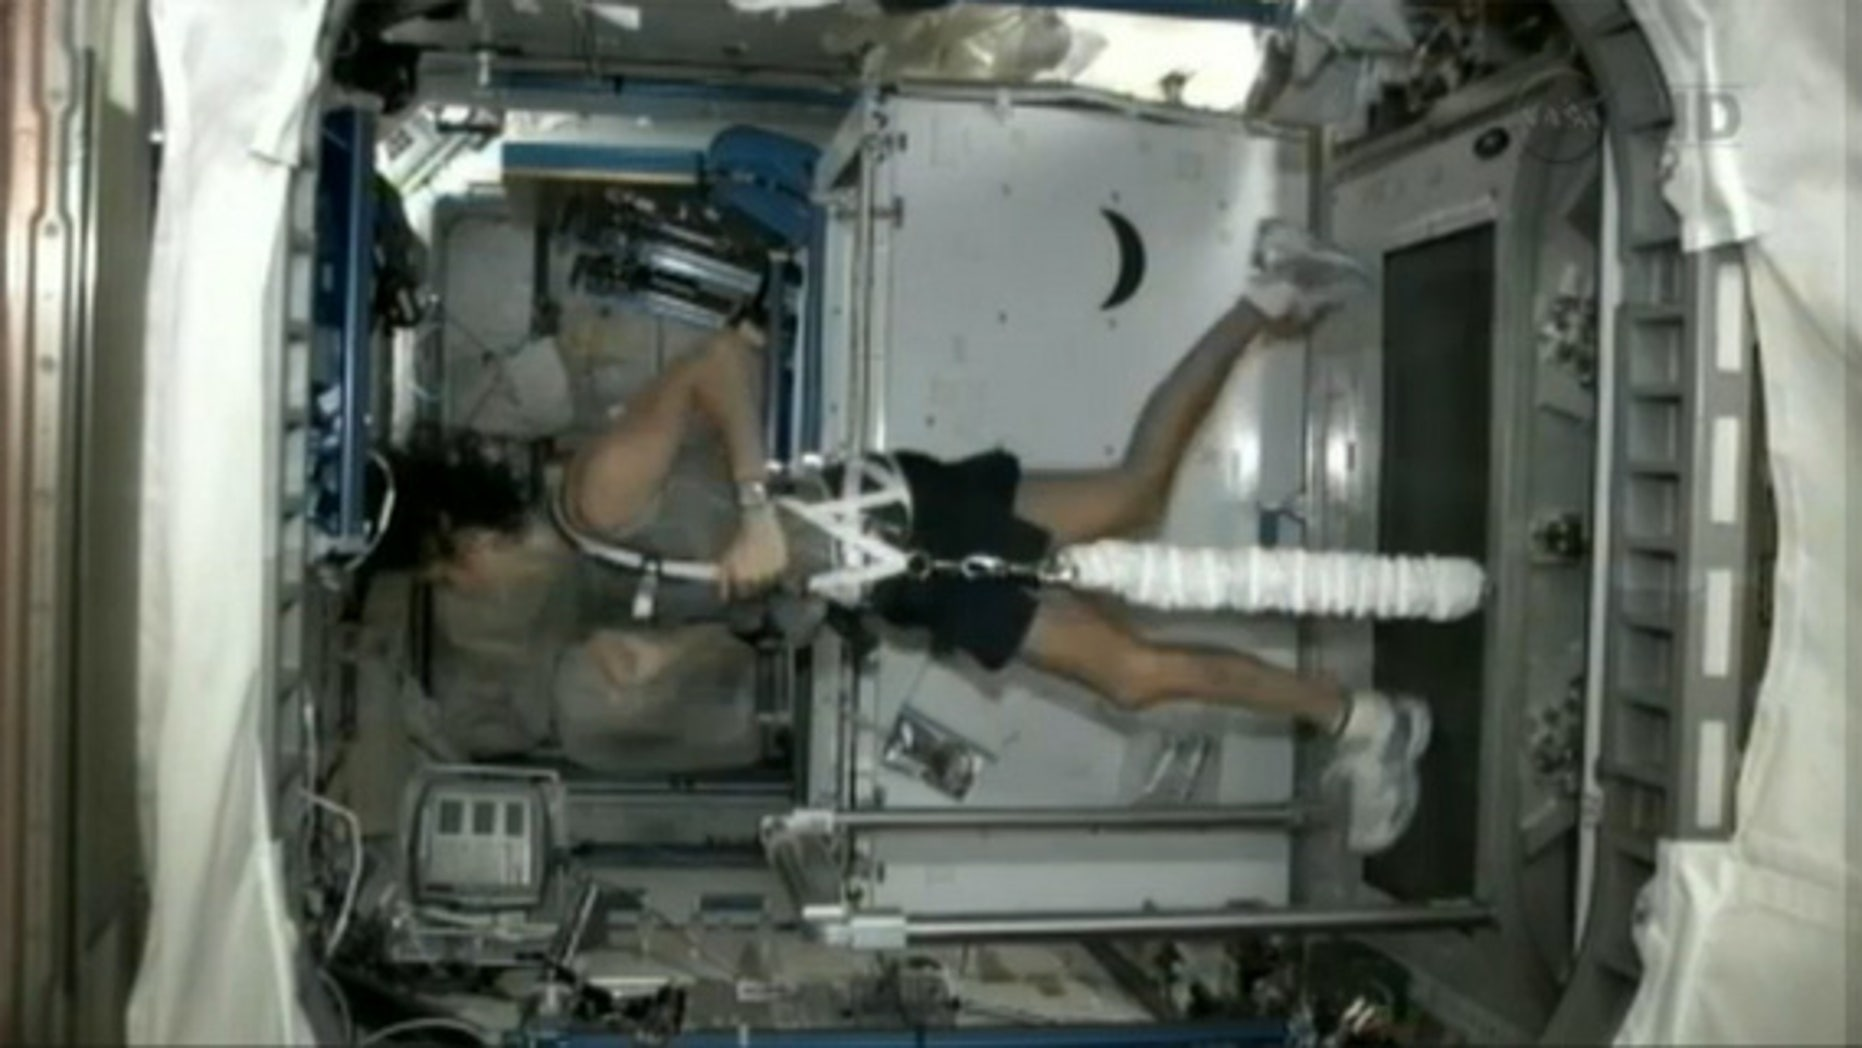 NASA astronaut Sunita Williams completed a triathlon from space Sept. 16, 2012, using an orbital treadmill to complete the running portion, a stationary bicycle for the biking leg, and a resistance machine to simulate swimming.